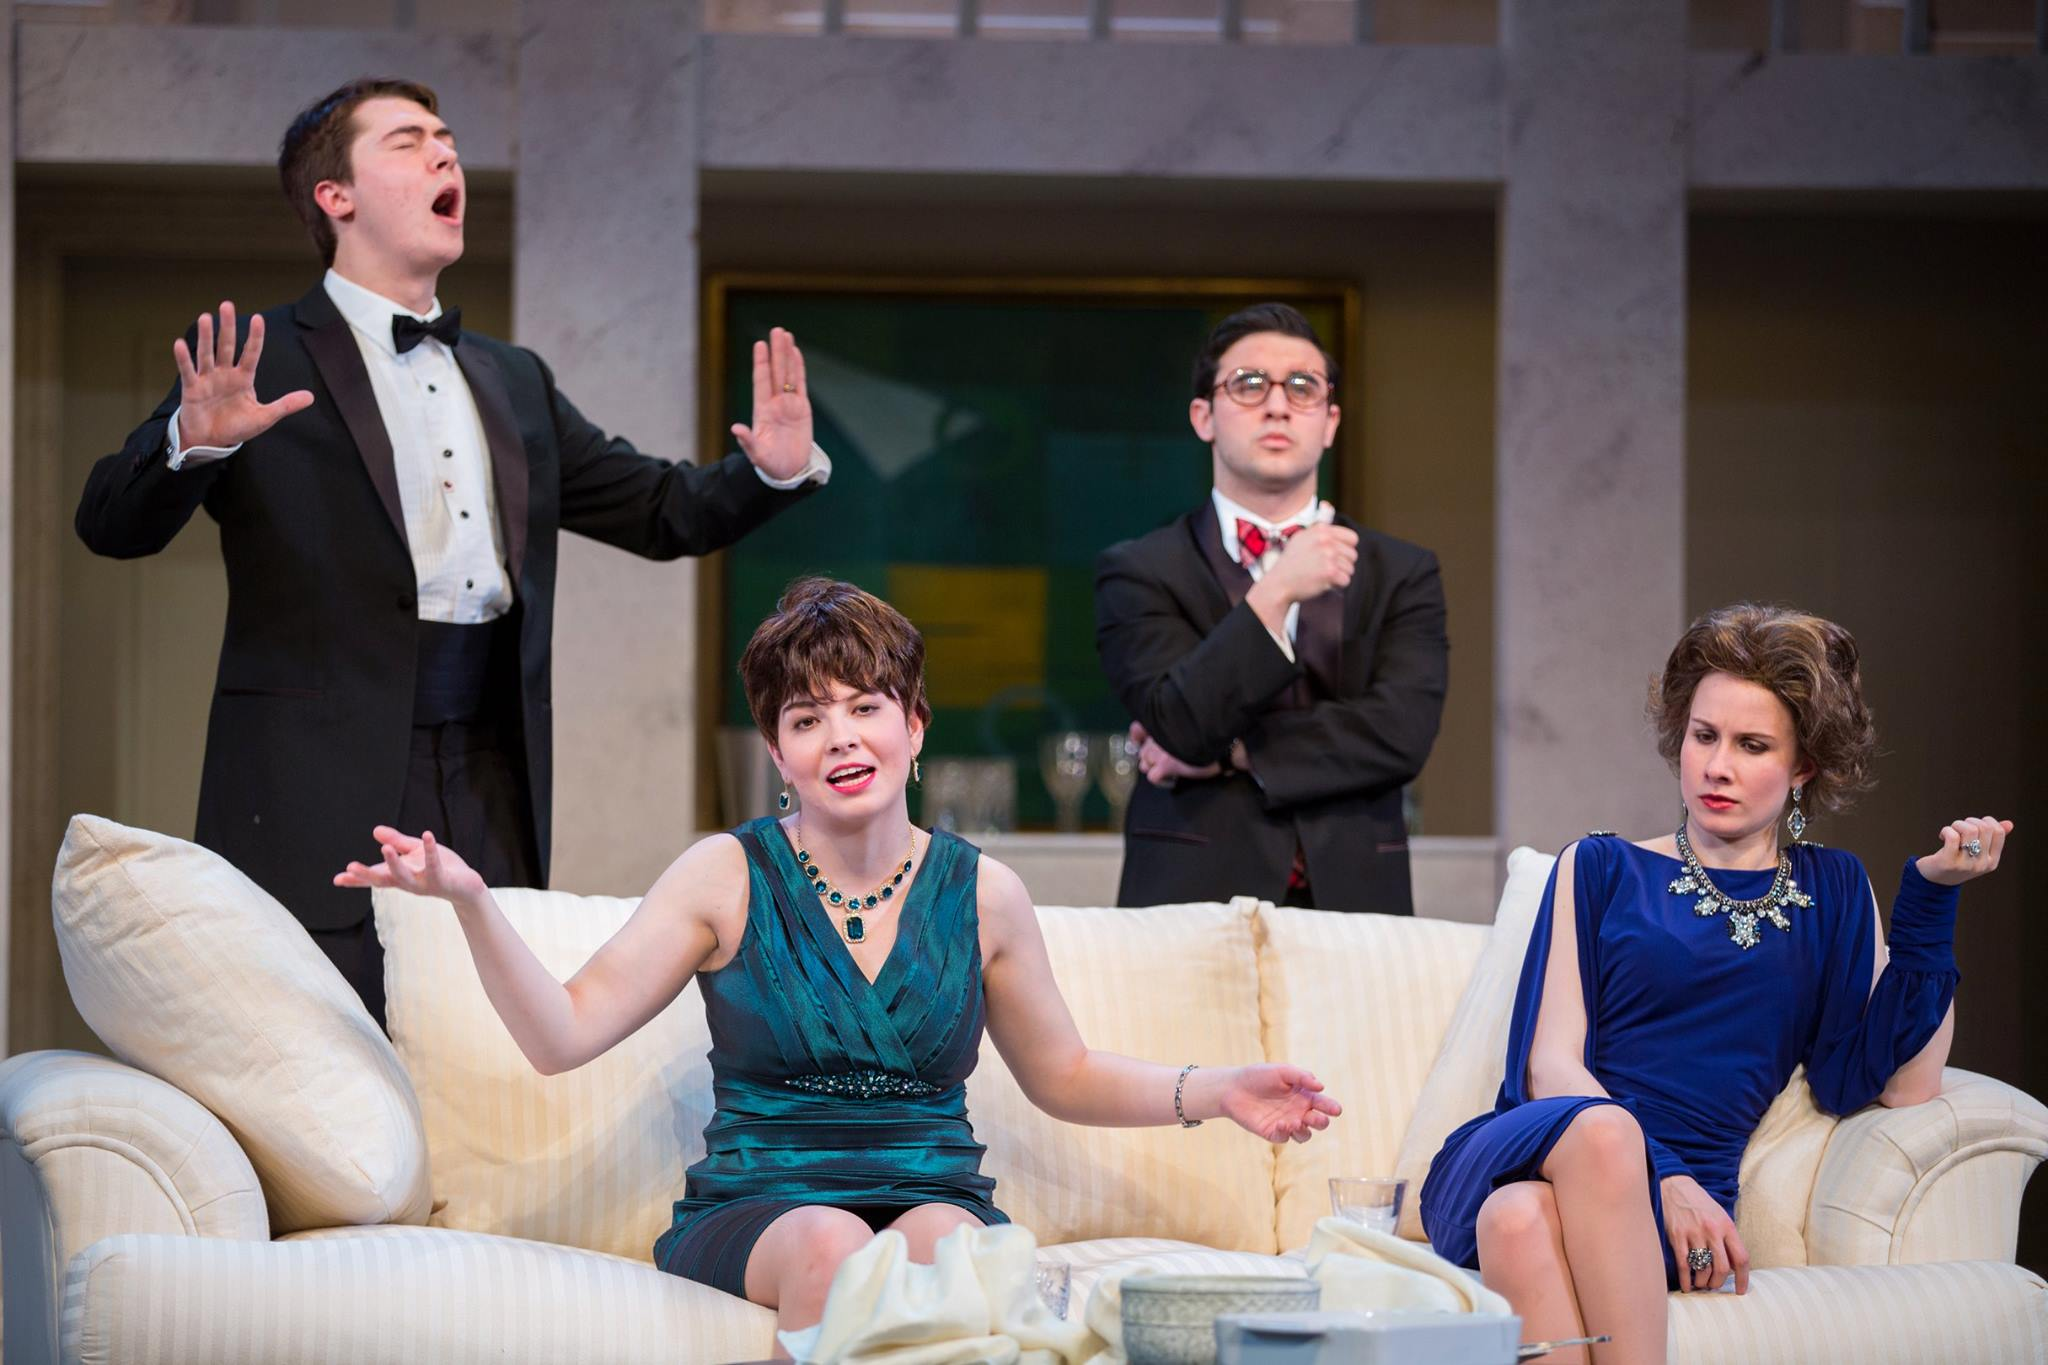 Lots of laughs for 'Rumors' on first night